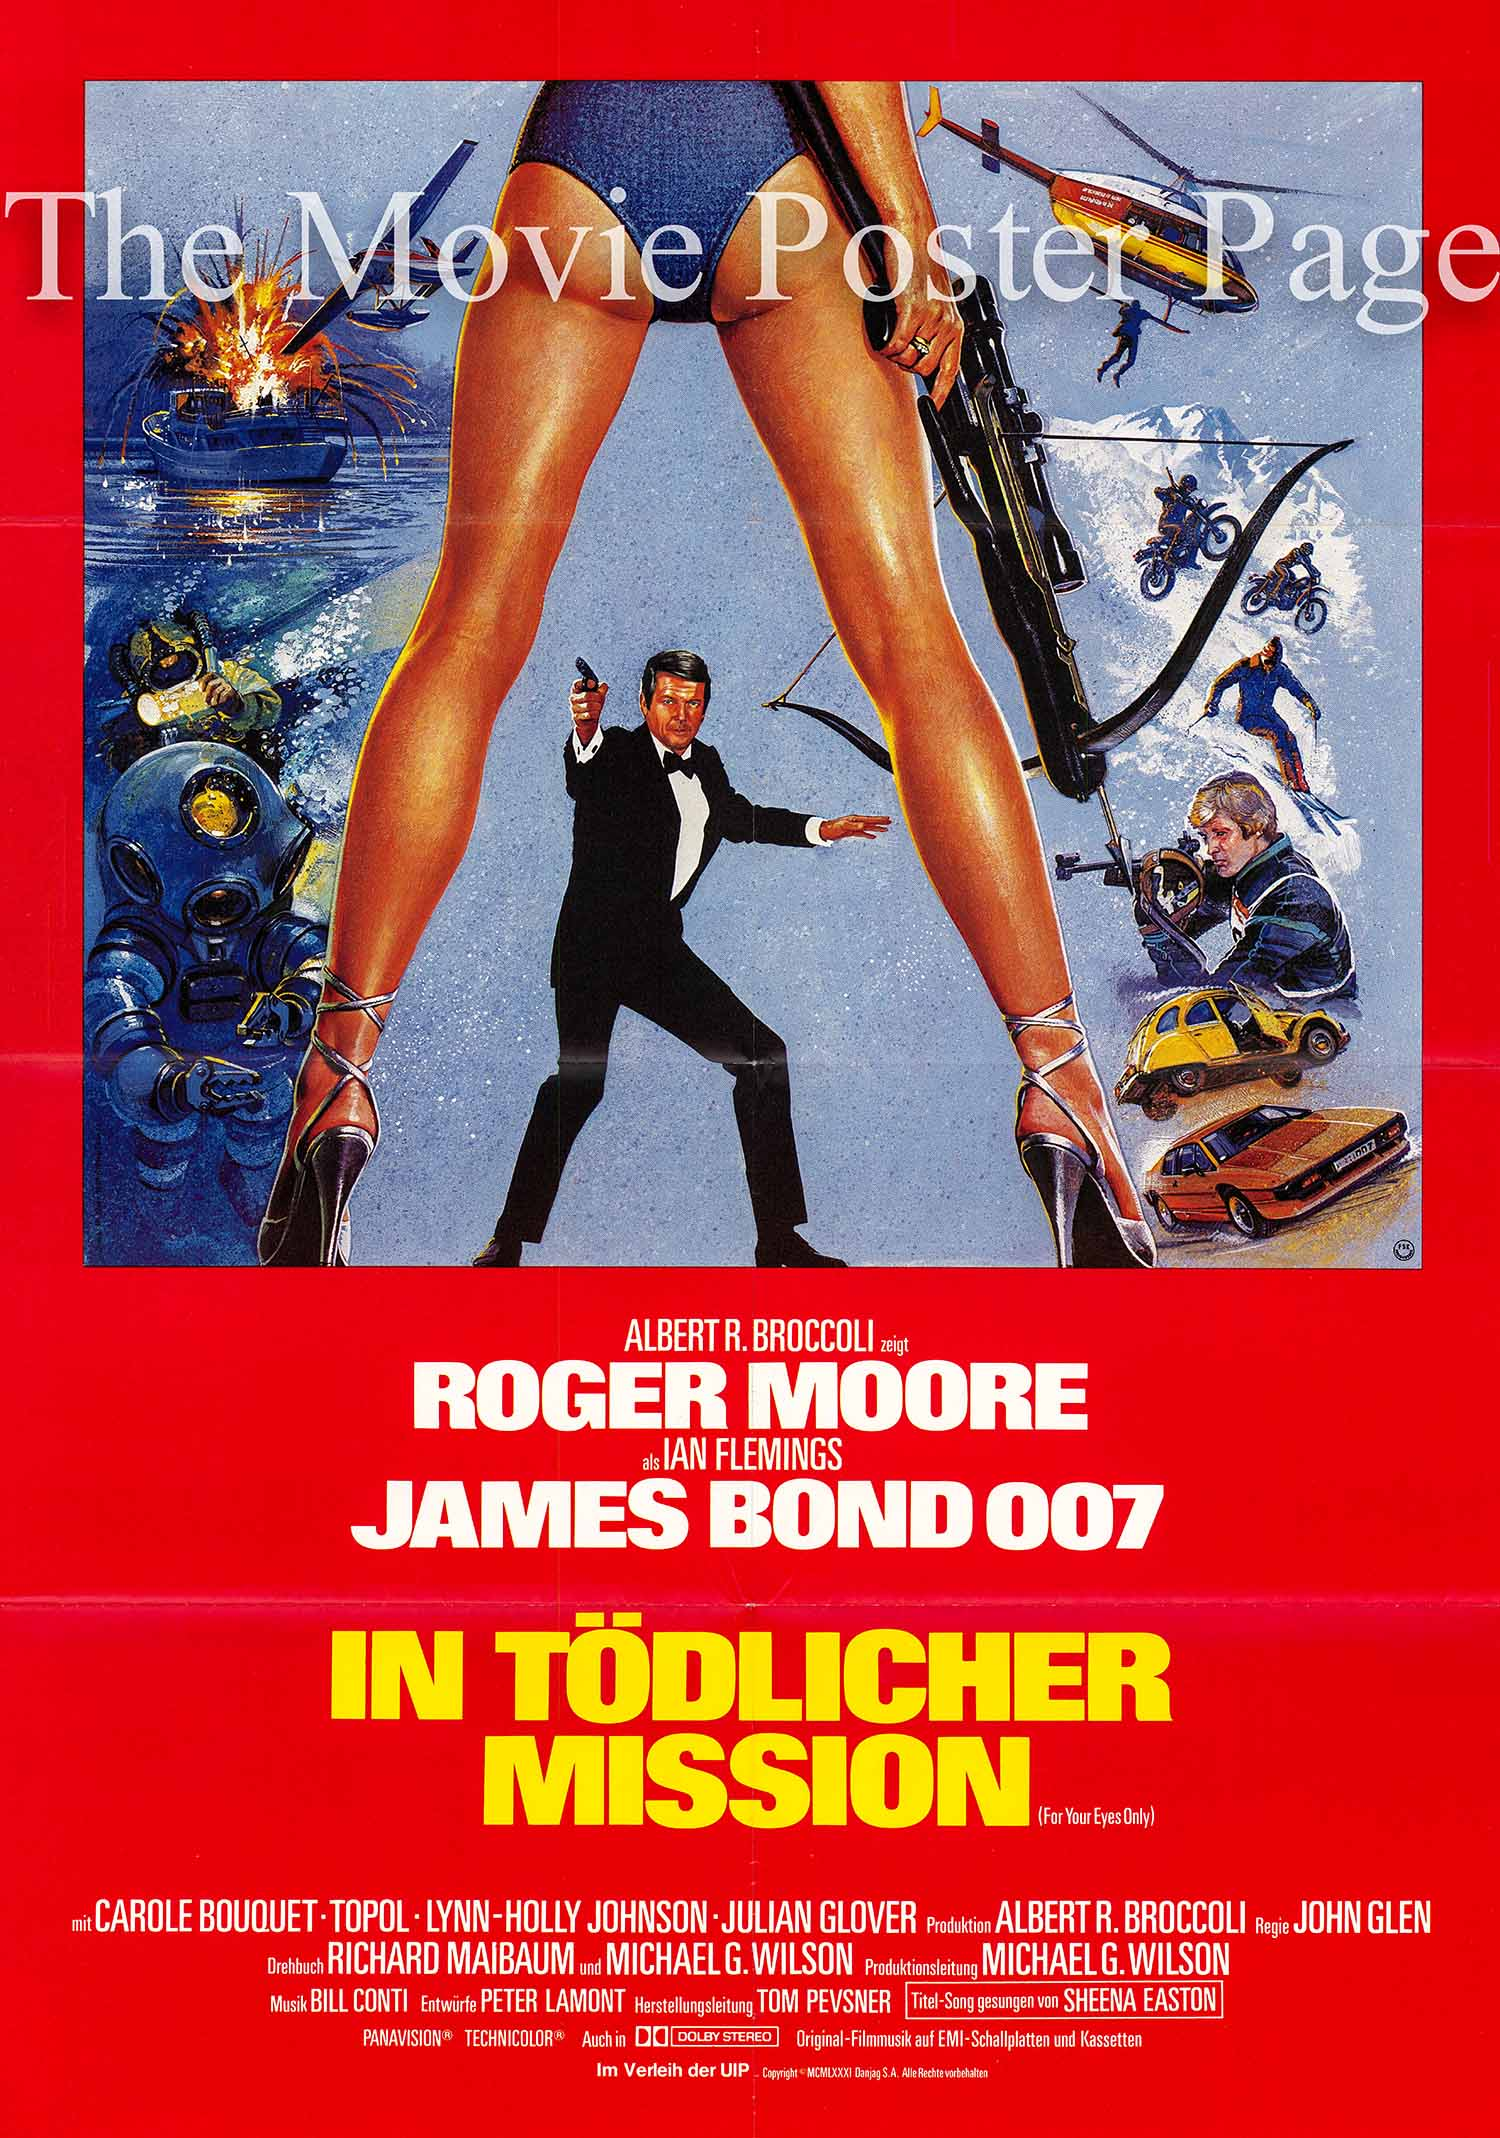 Pictured is a German promotional poster for the 1981 John Glen film For Your Eyes Only starring Roger Moore as James Bond.